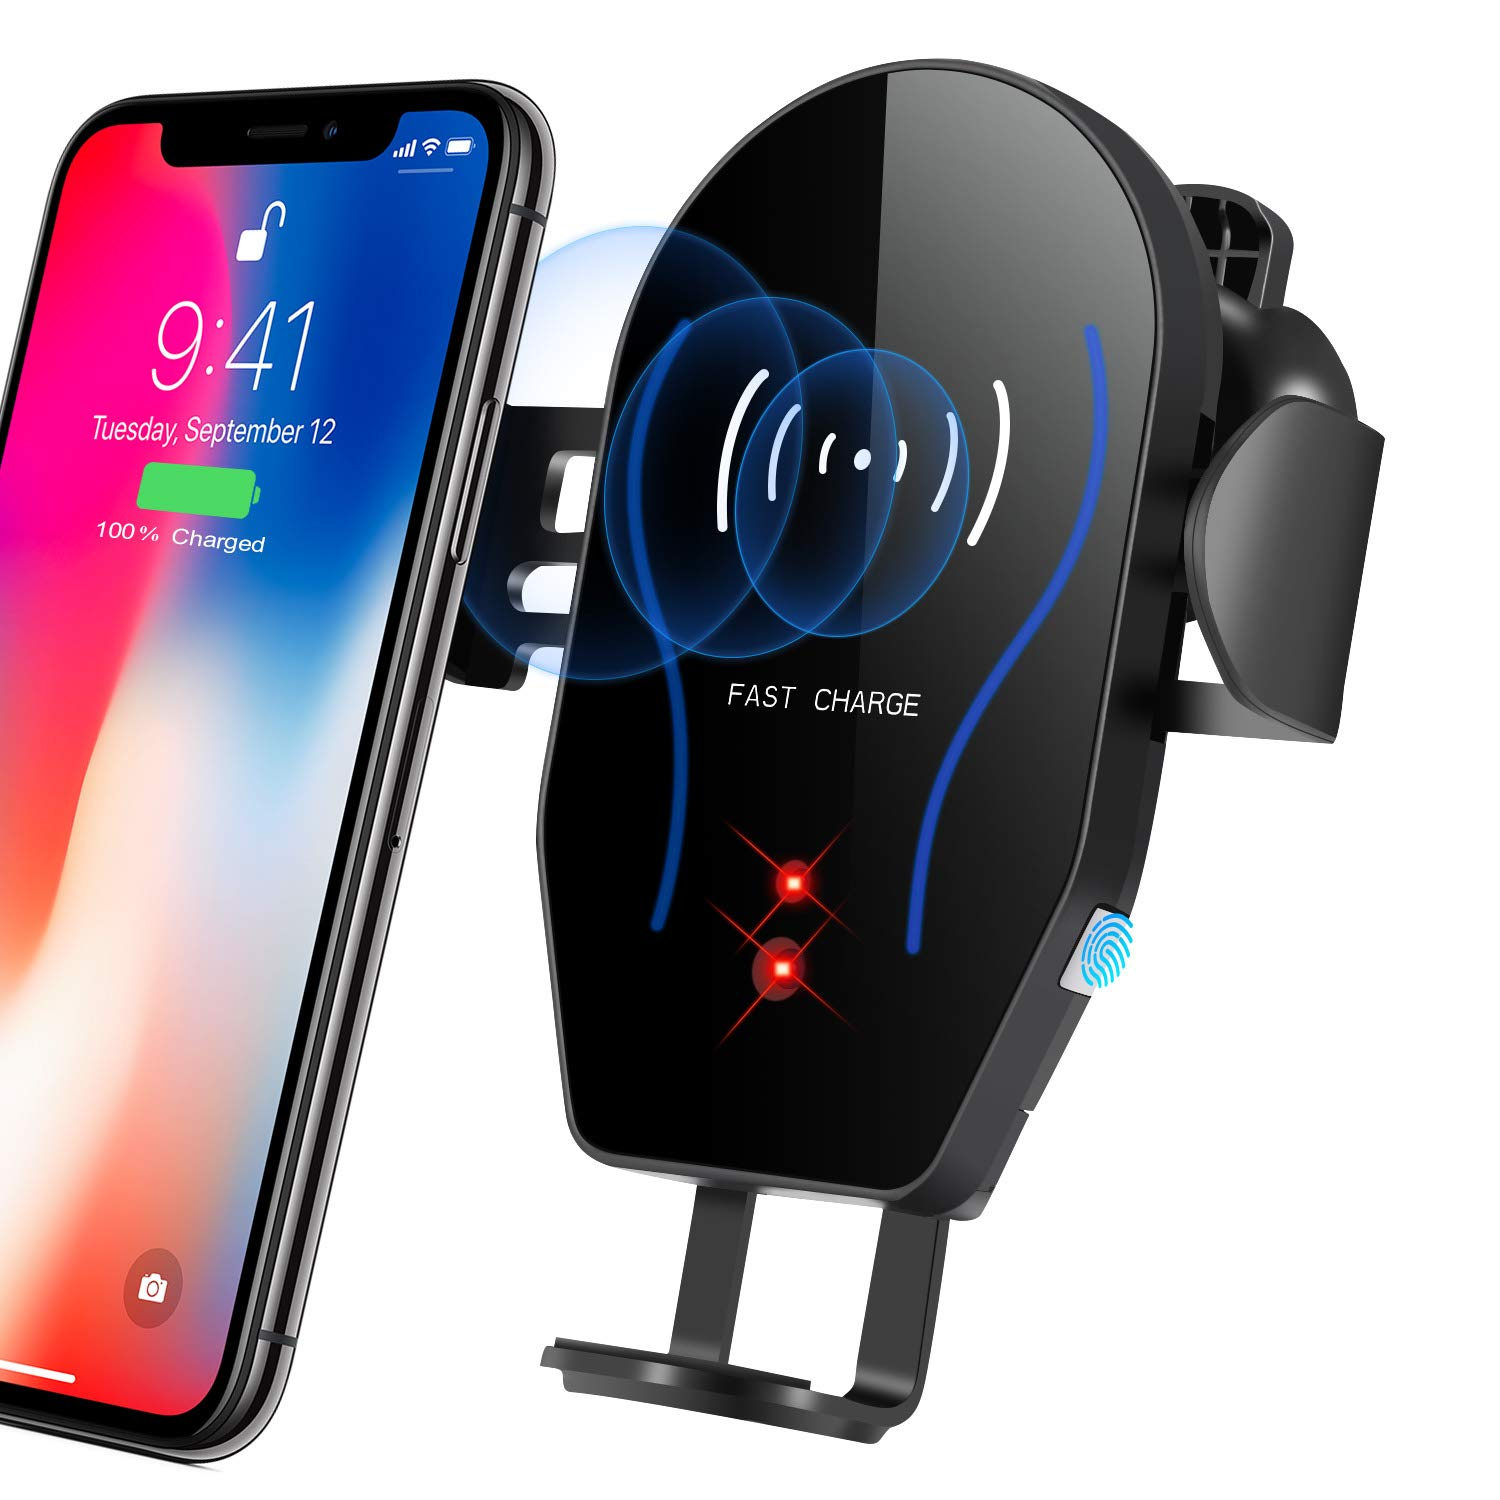 Phone Holder for Car,Car Phone Mount, Automatic Clamping Wireless Charging Car Mount Air Vent Cell Phone Holder Charger Car Mount Compatible with iPhone Xr Xs Max 8plus by Changehope